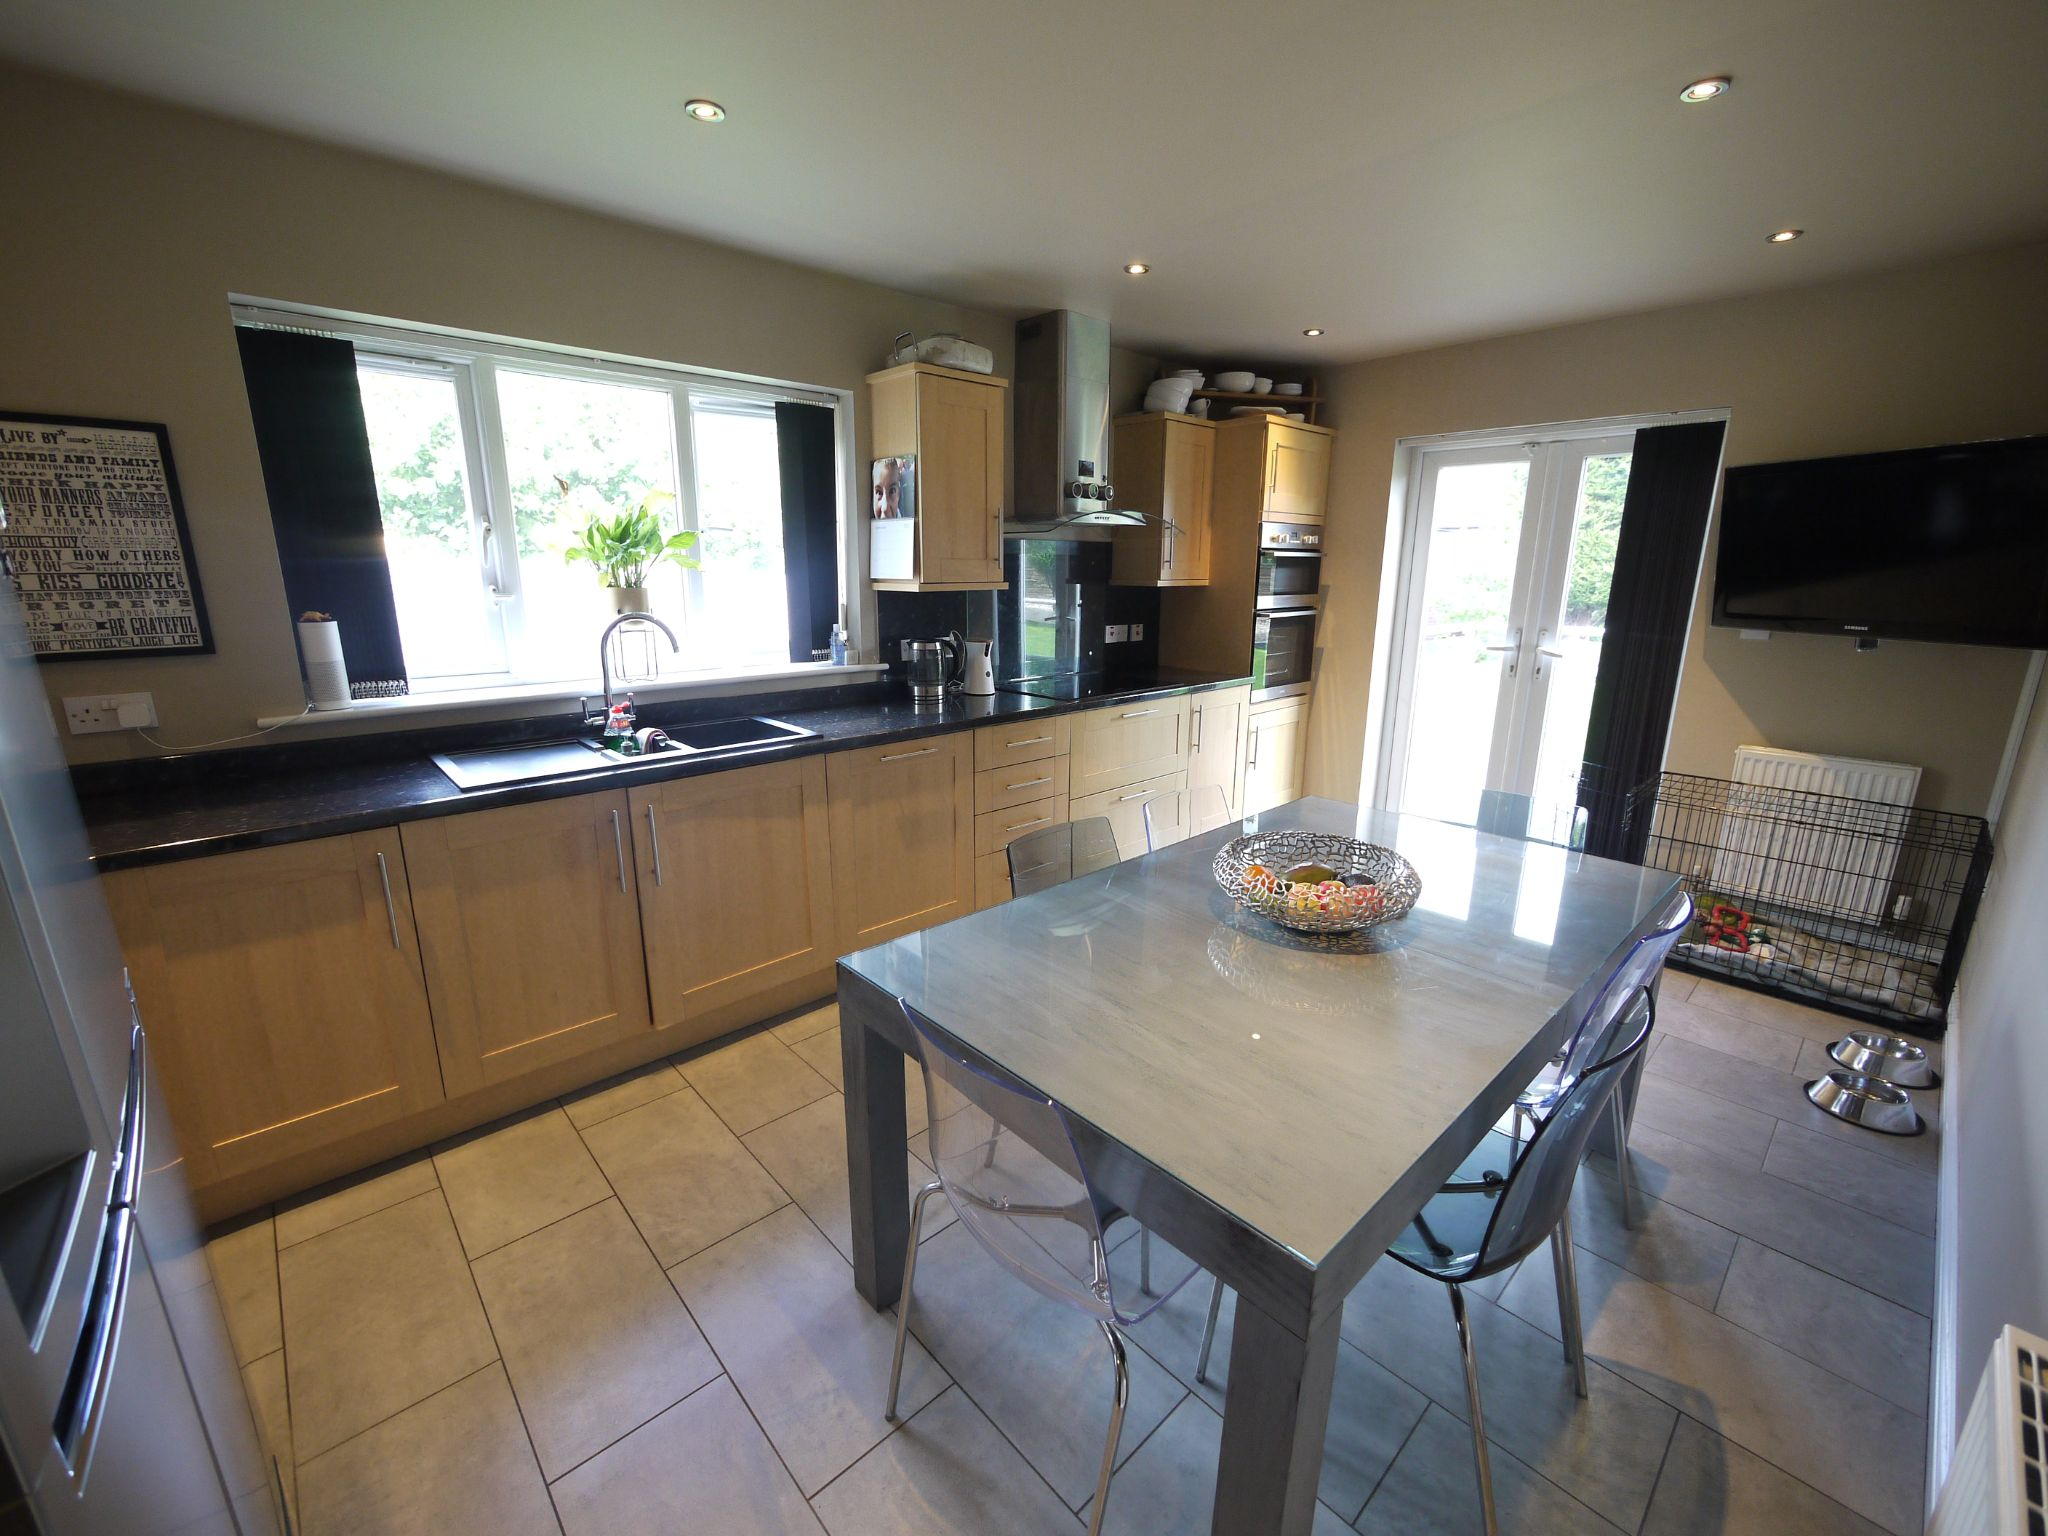 4 bedroom detached house SSTC in Halifax - Kitchen 1.